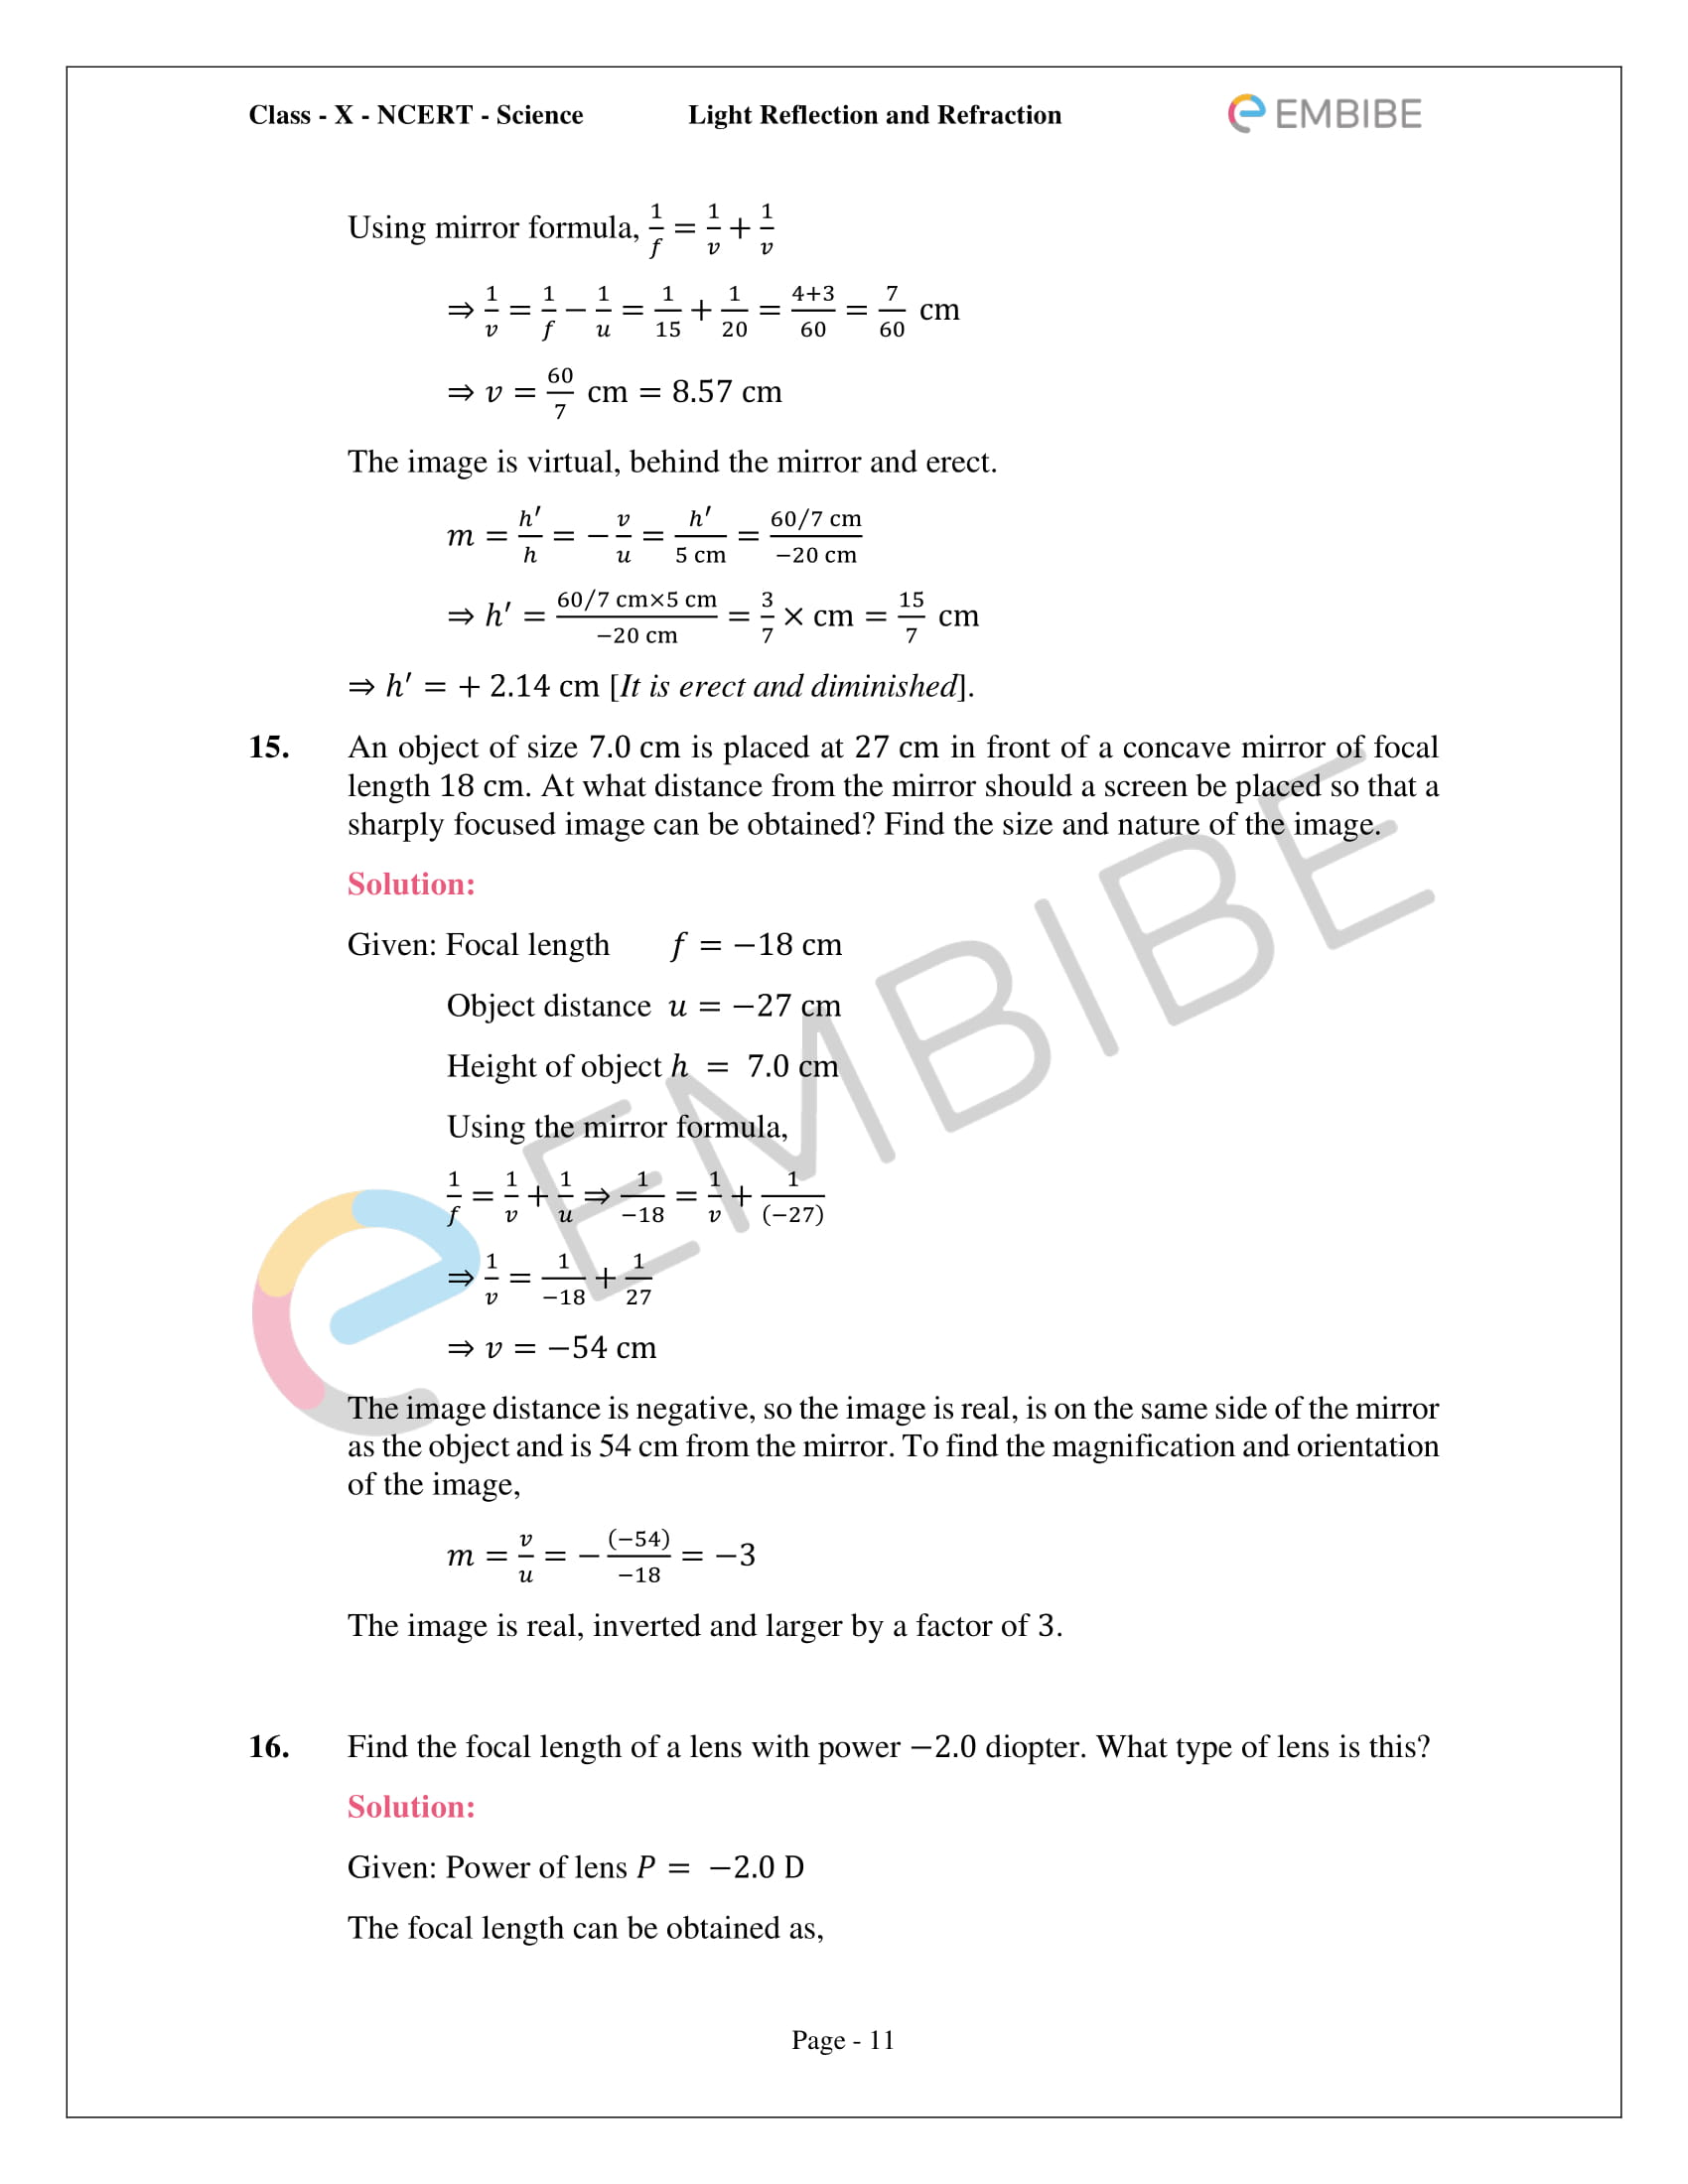 CBSE NCERT Solutions For Class 10 Science Chapter 10 - Light Reflection and Refraction - 11